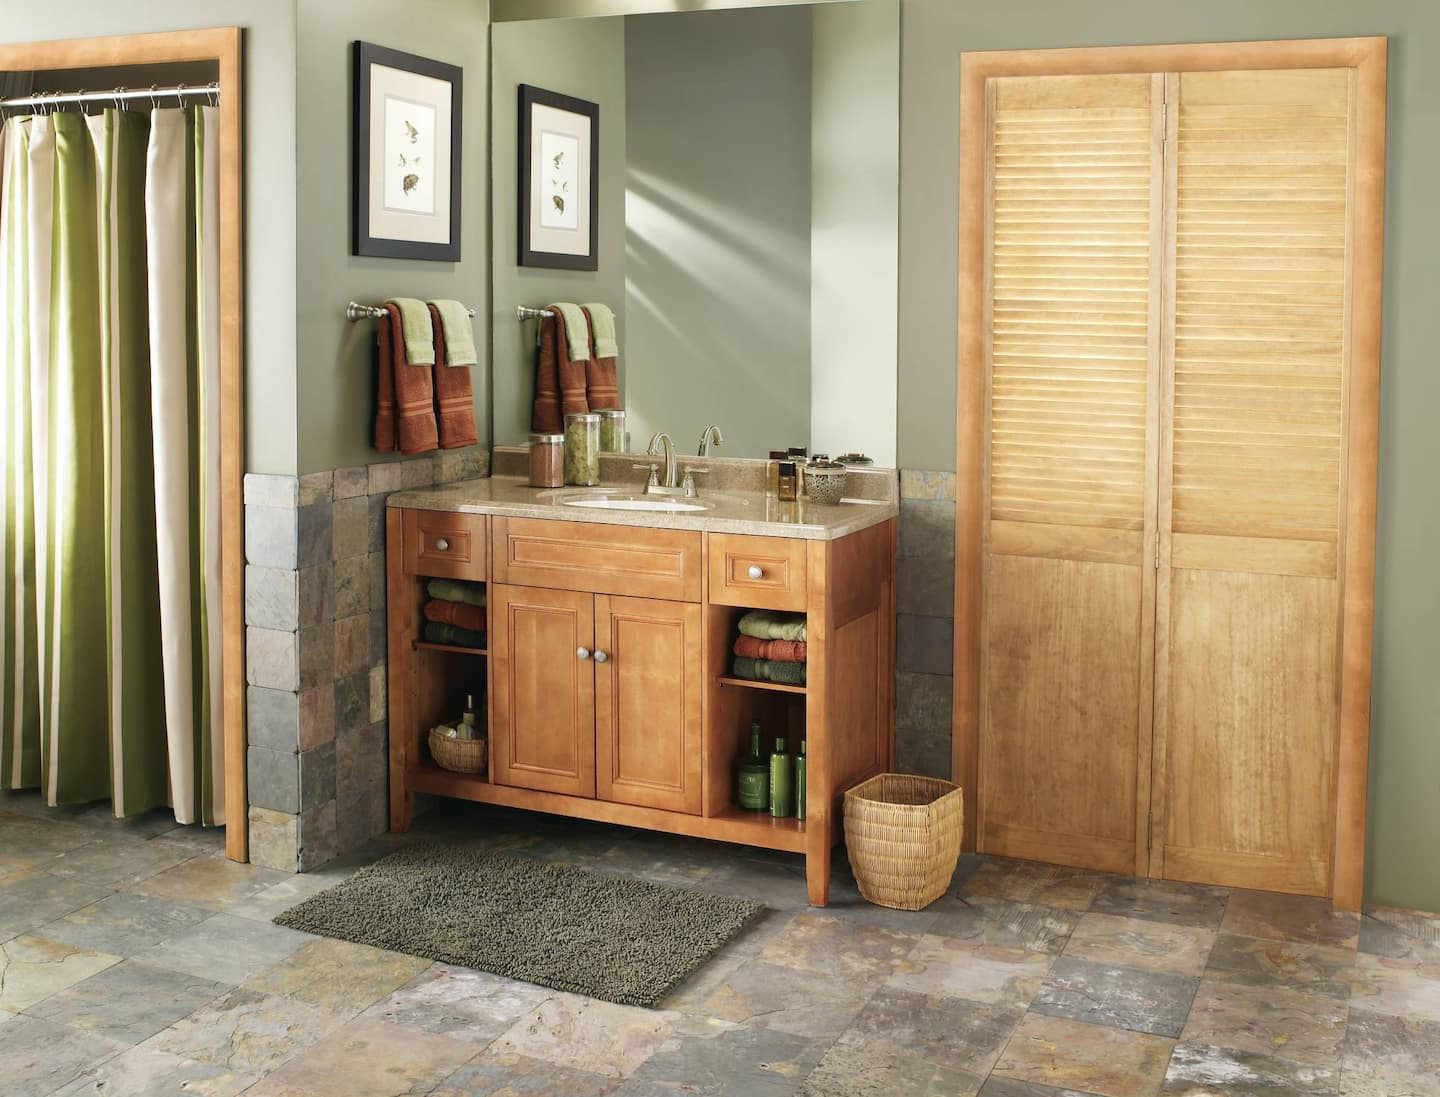 Bathroom Makeover – 5 Tips for the Budget